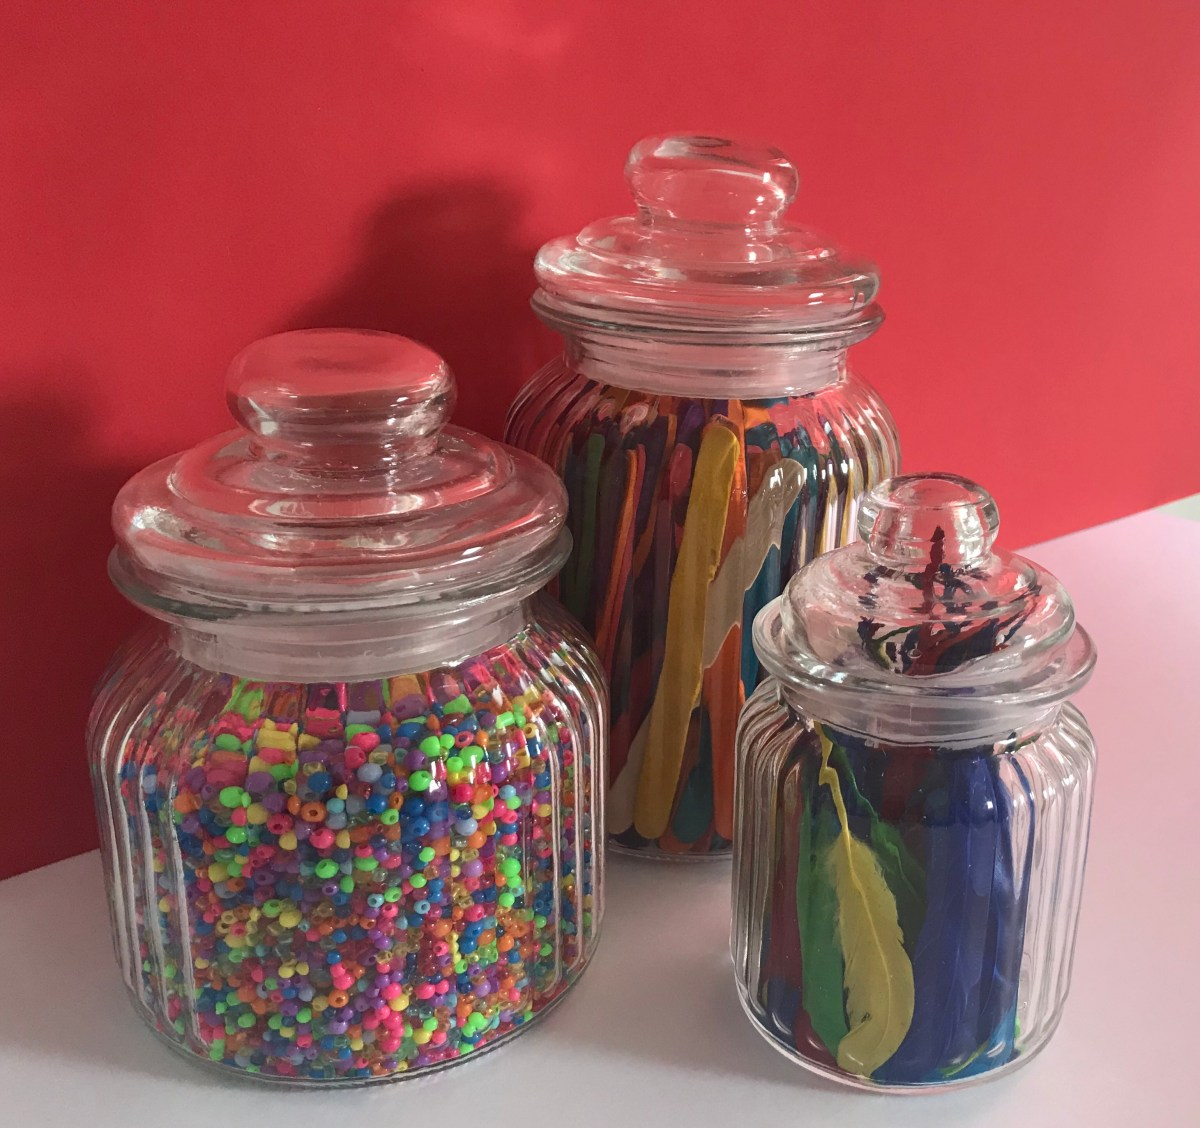 Glass jars with beads, lollipop sticks and feathers